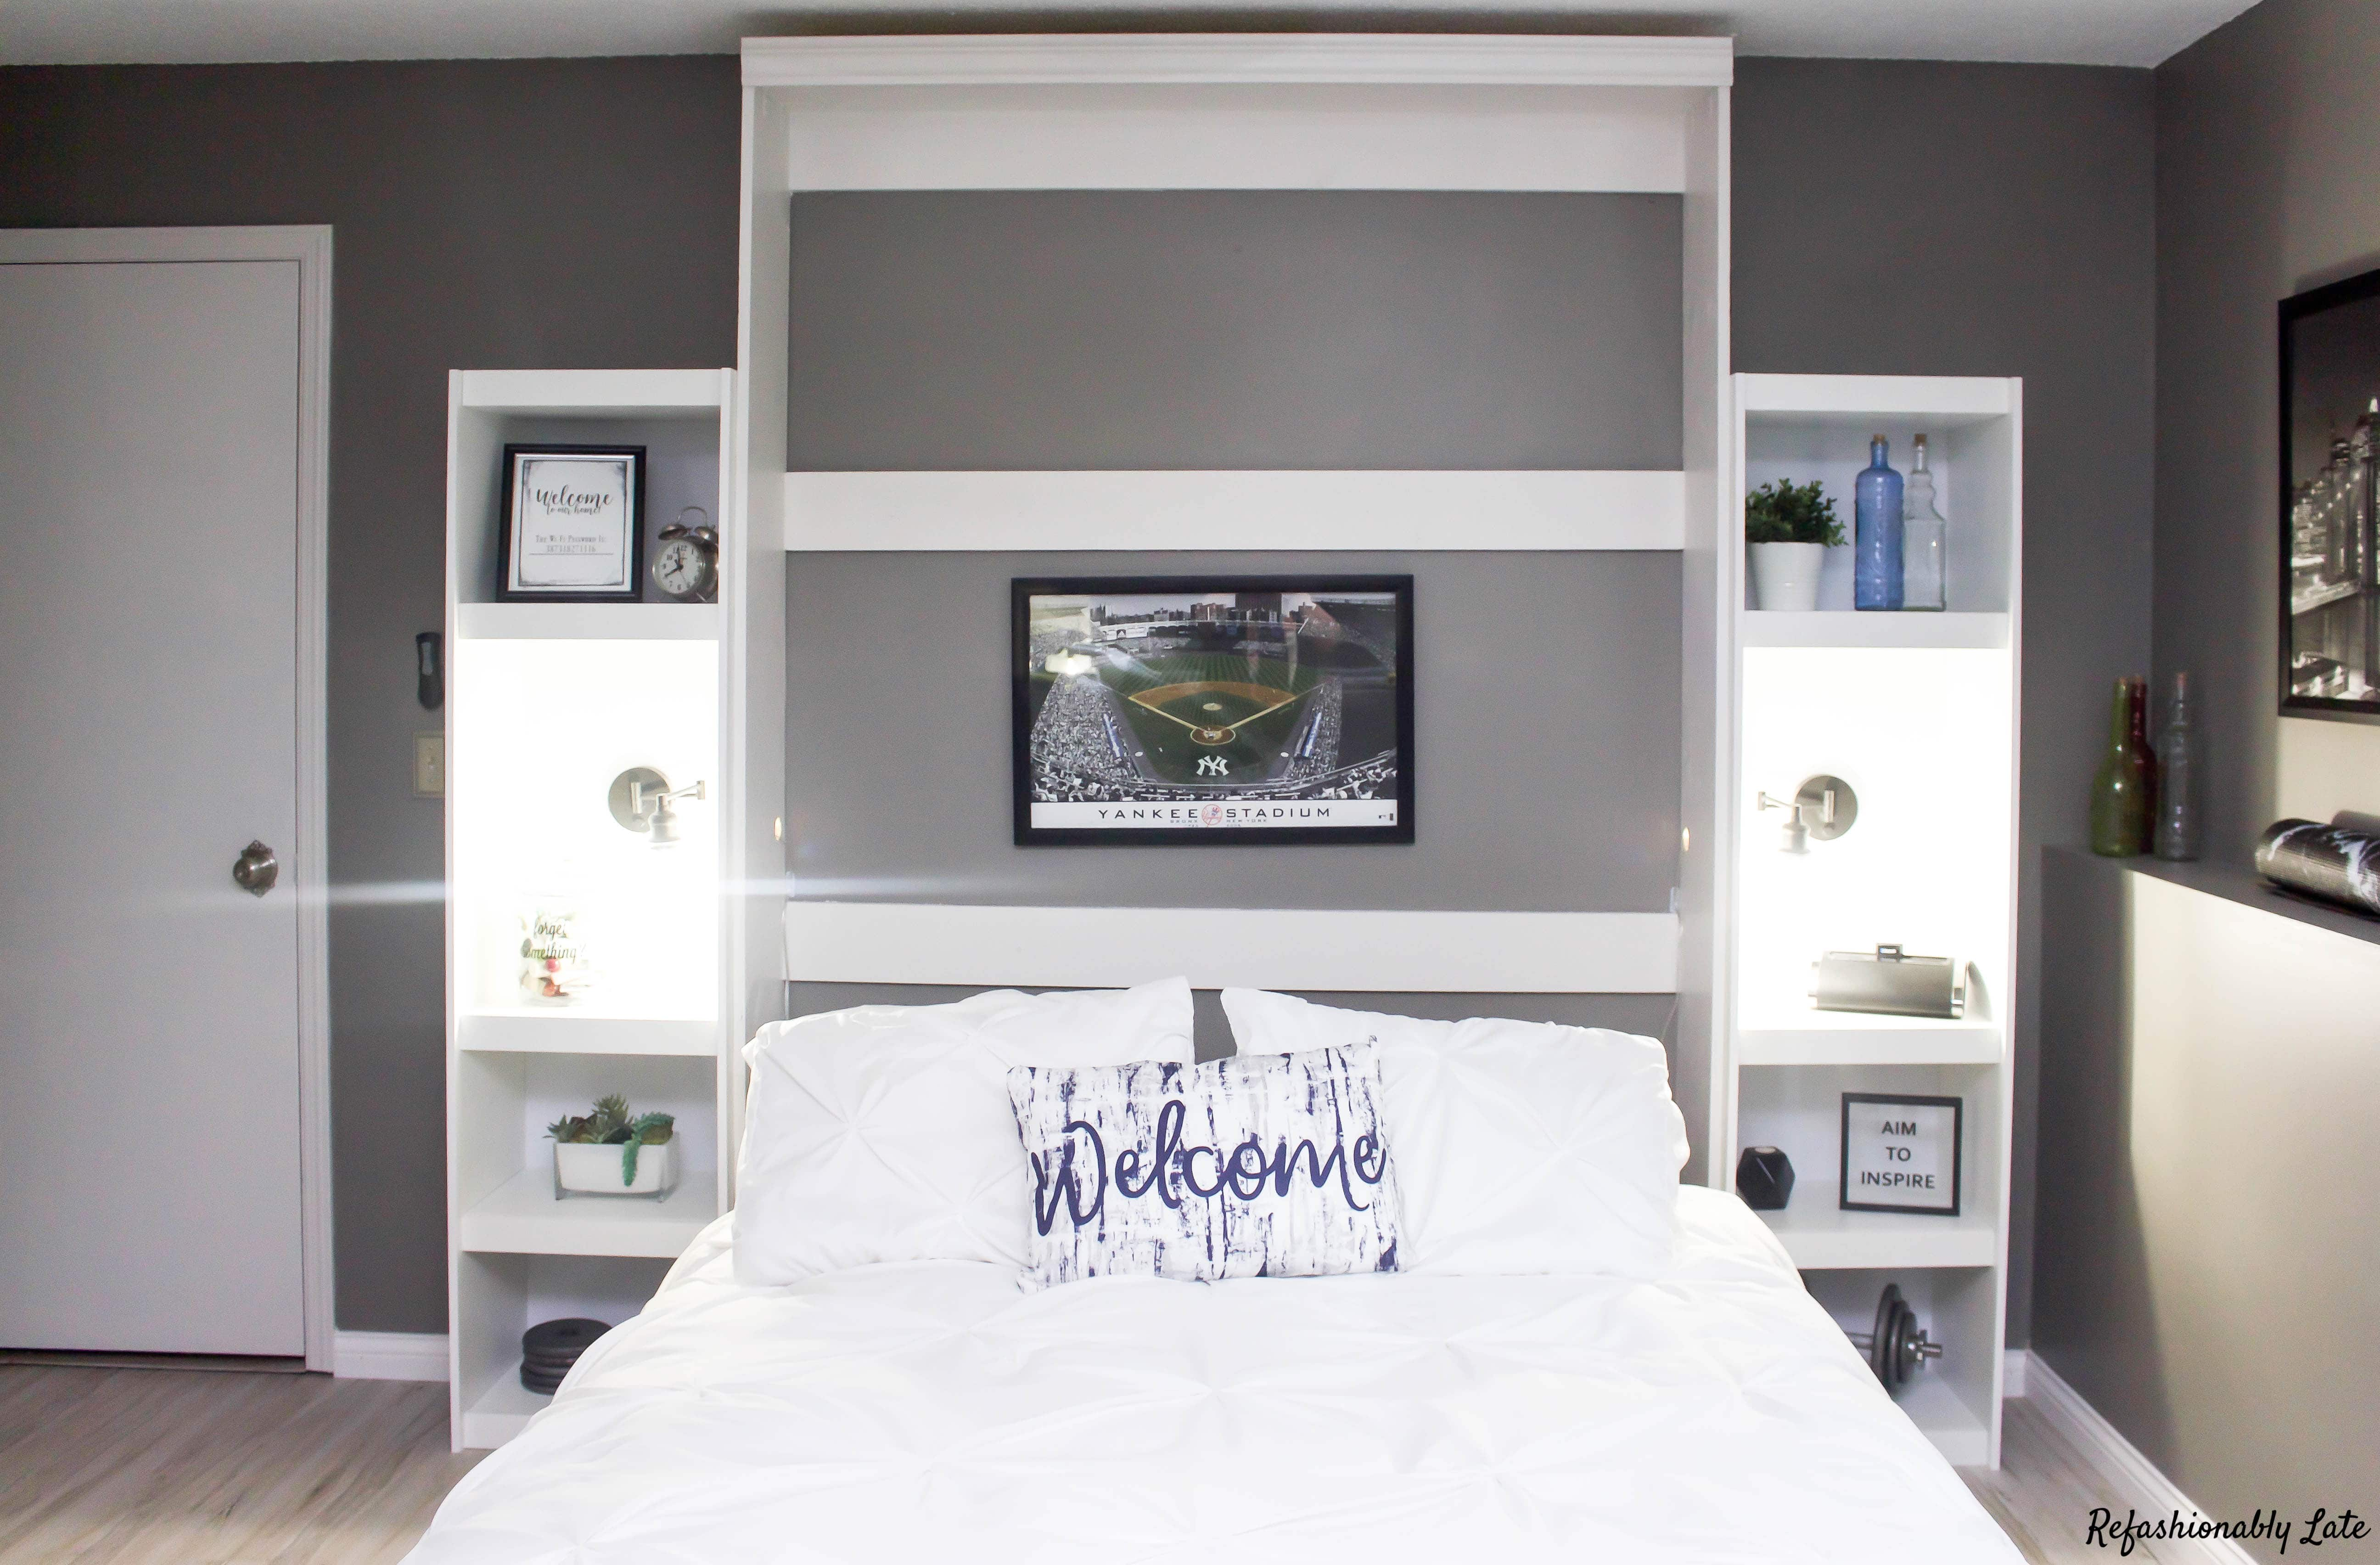 murphy bed folded down with a pillow with the text welcome and two shelves on either side with built in lights turned on